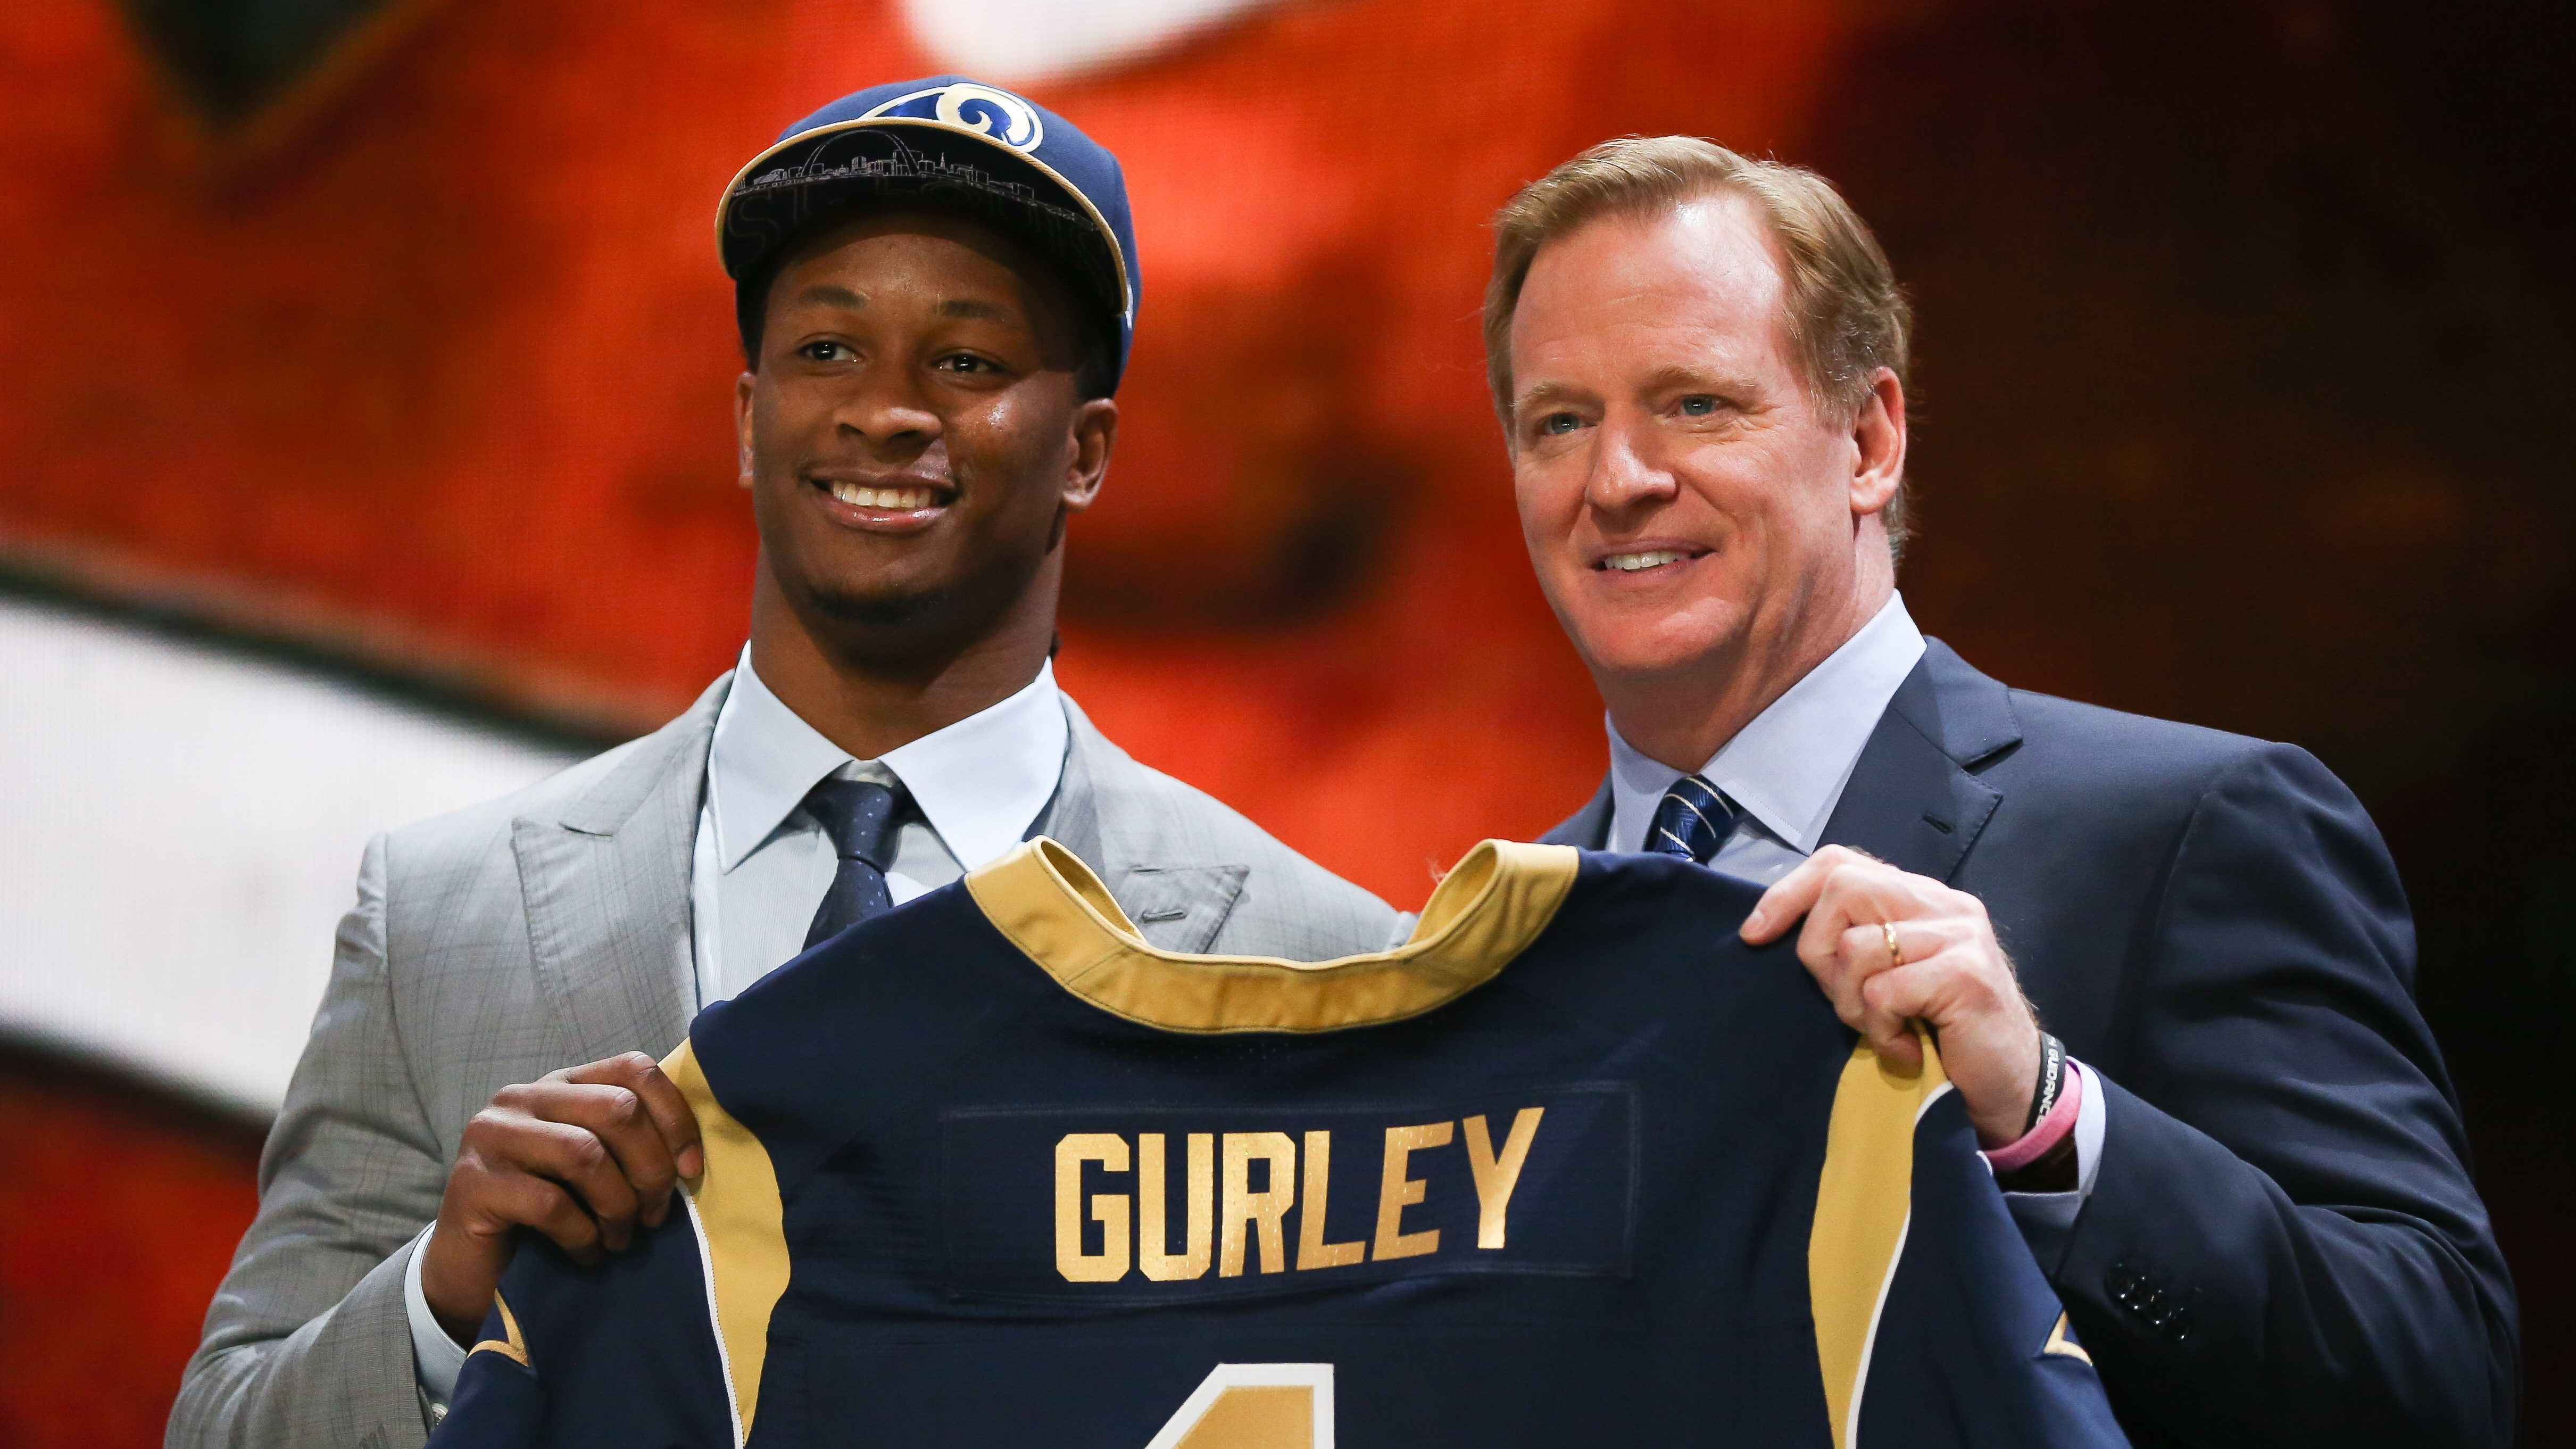 Todd Gurley S College Stats Dominance Overshadowed By Injuries Heavy Com